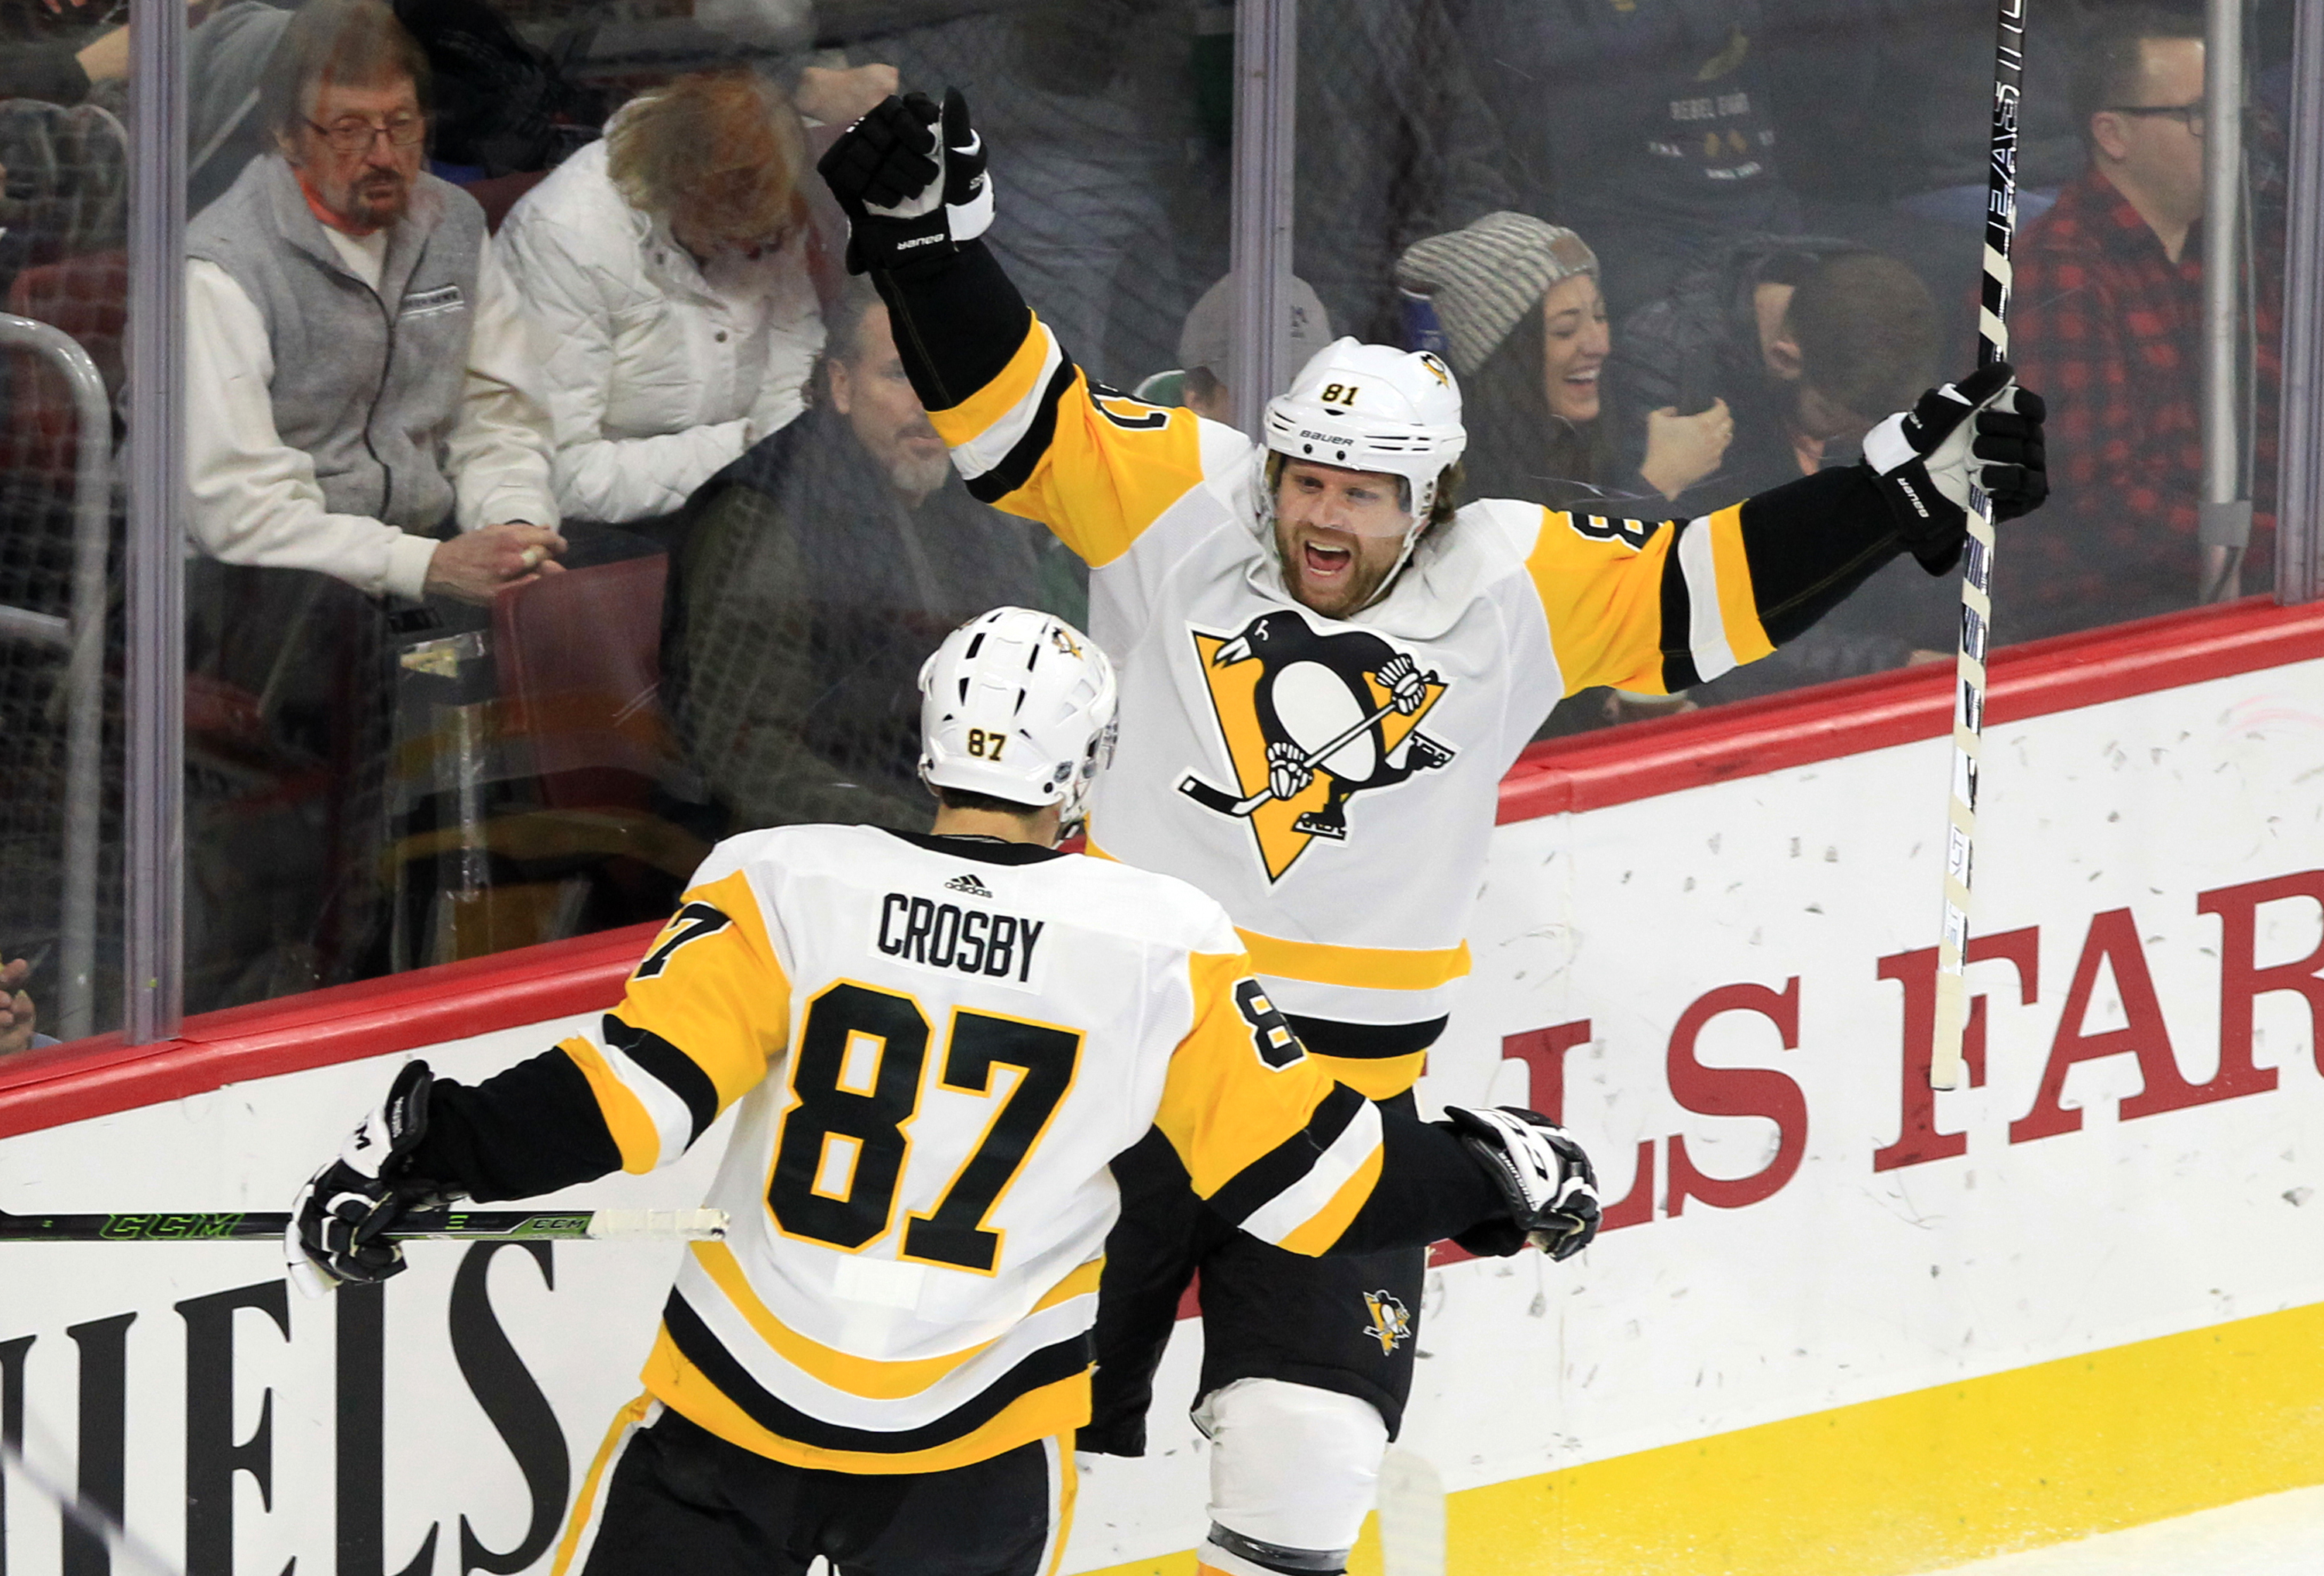 Phil Kessel, right, and Sidney Crosby of the Penguins celebrate Kessel's goal during the second period.